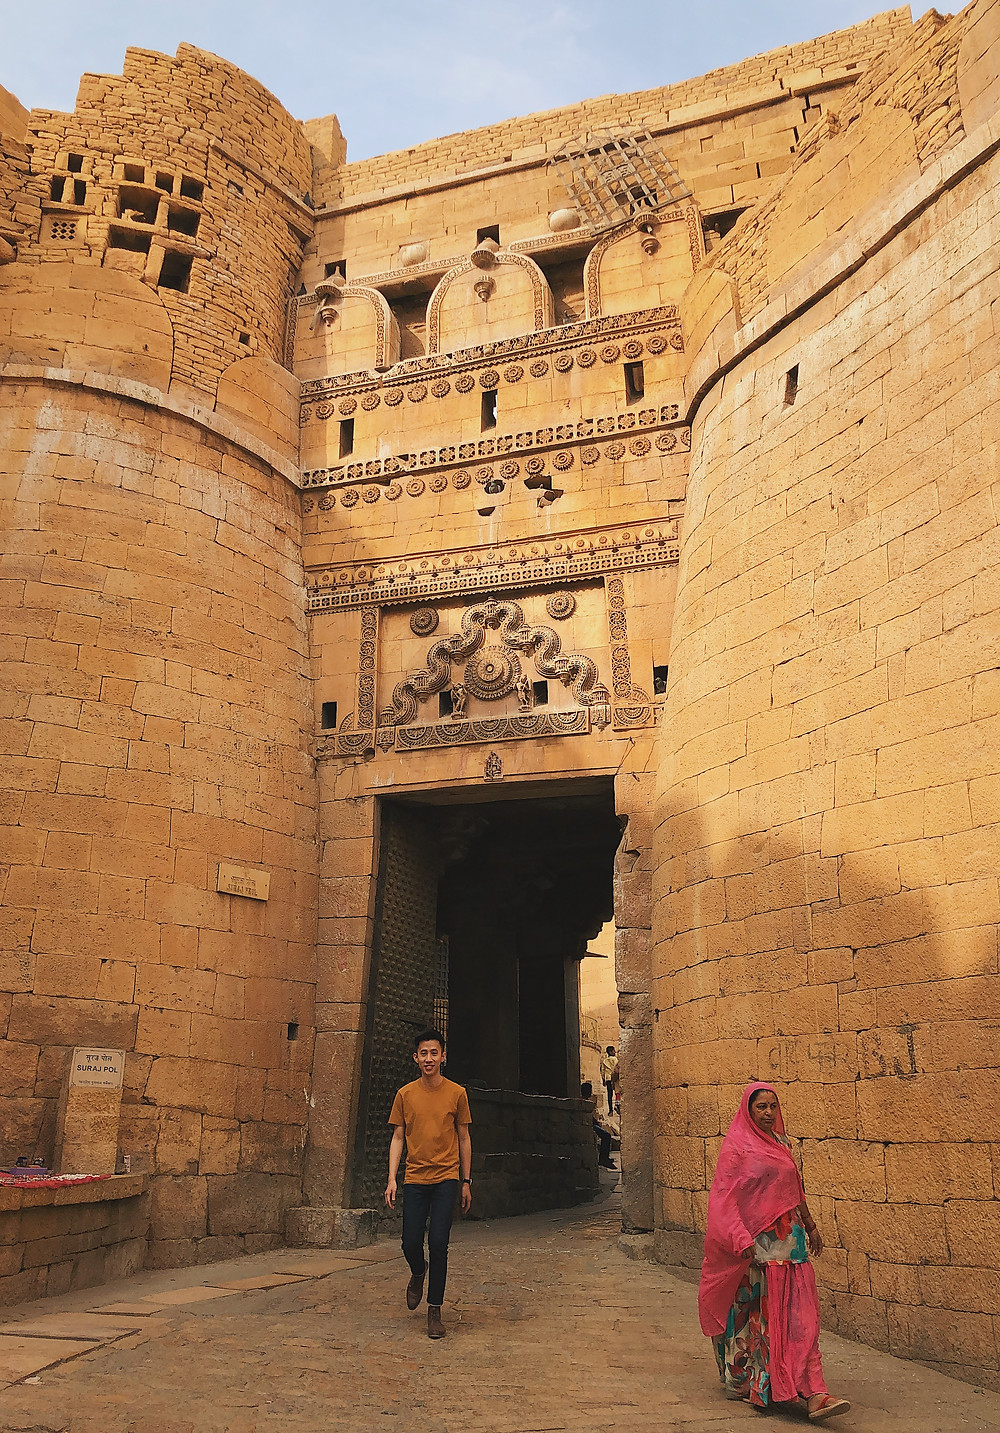 Entrance of the Jaisalmer Fort, Jaisalmer, Rajasthan, India